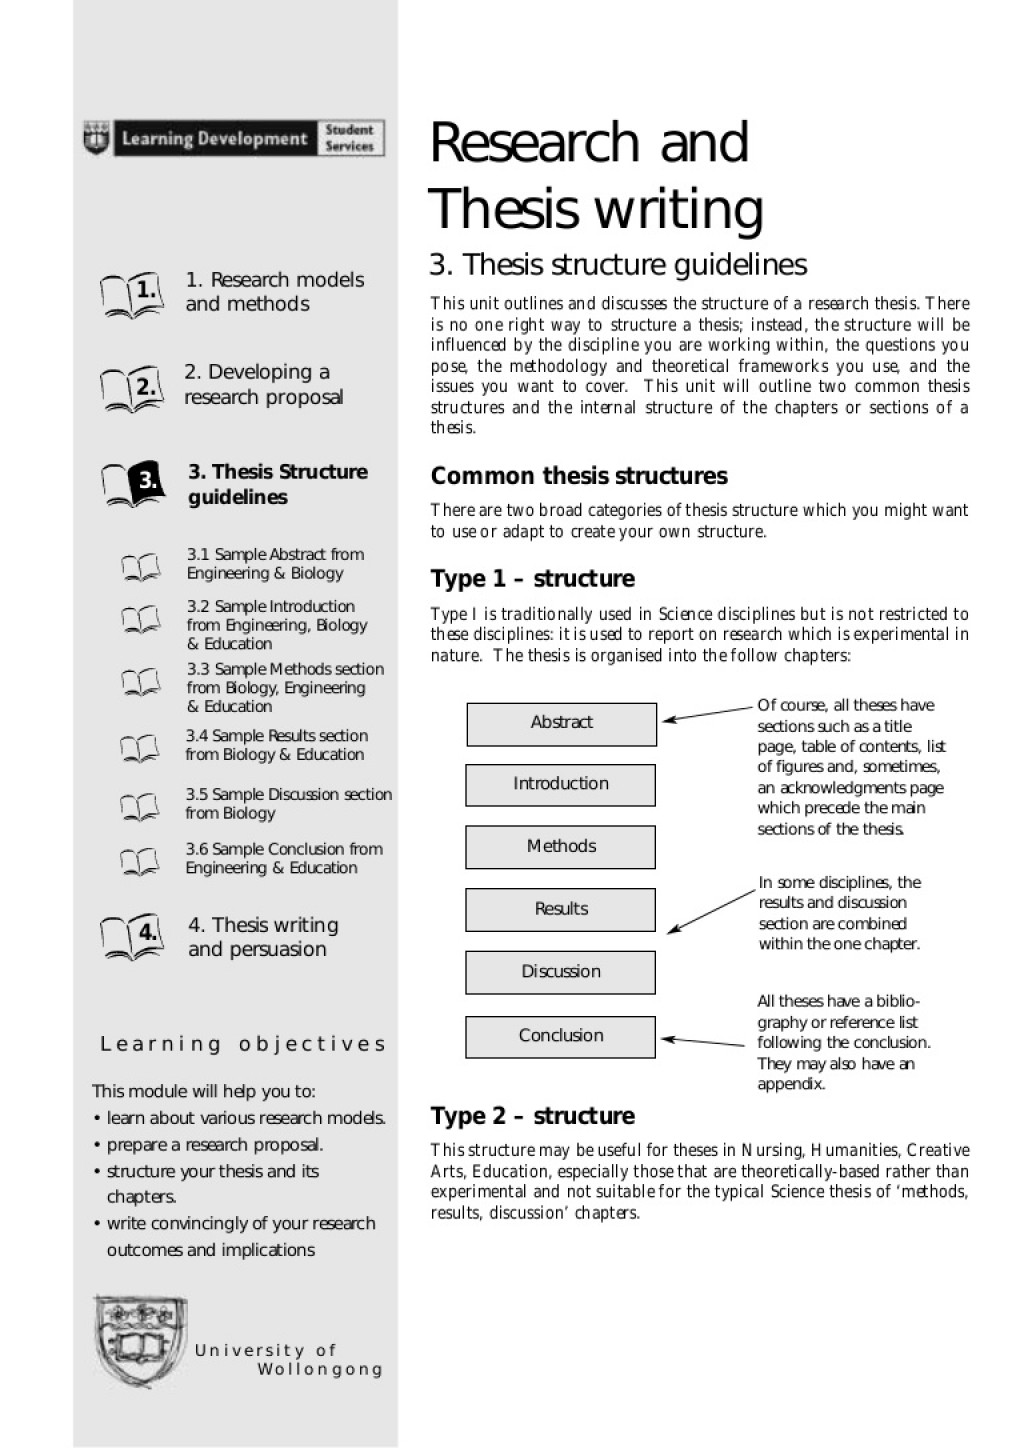 002 How To Write References In Research Paper Slideshare Researchtheseswriting Phpapp01 Thumbnail Excellent Large